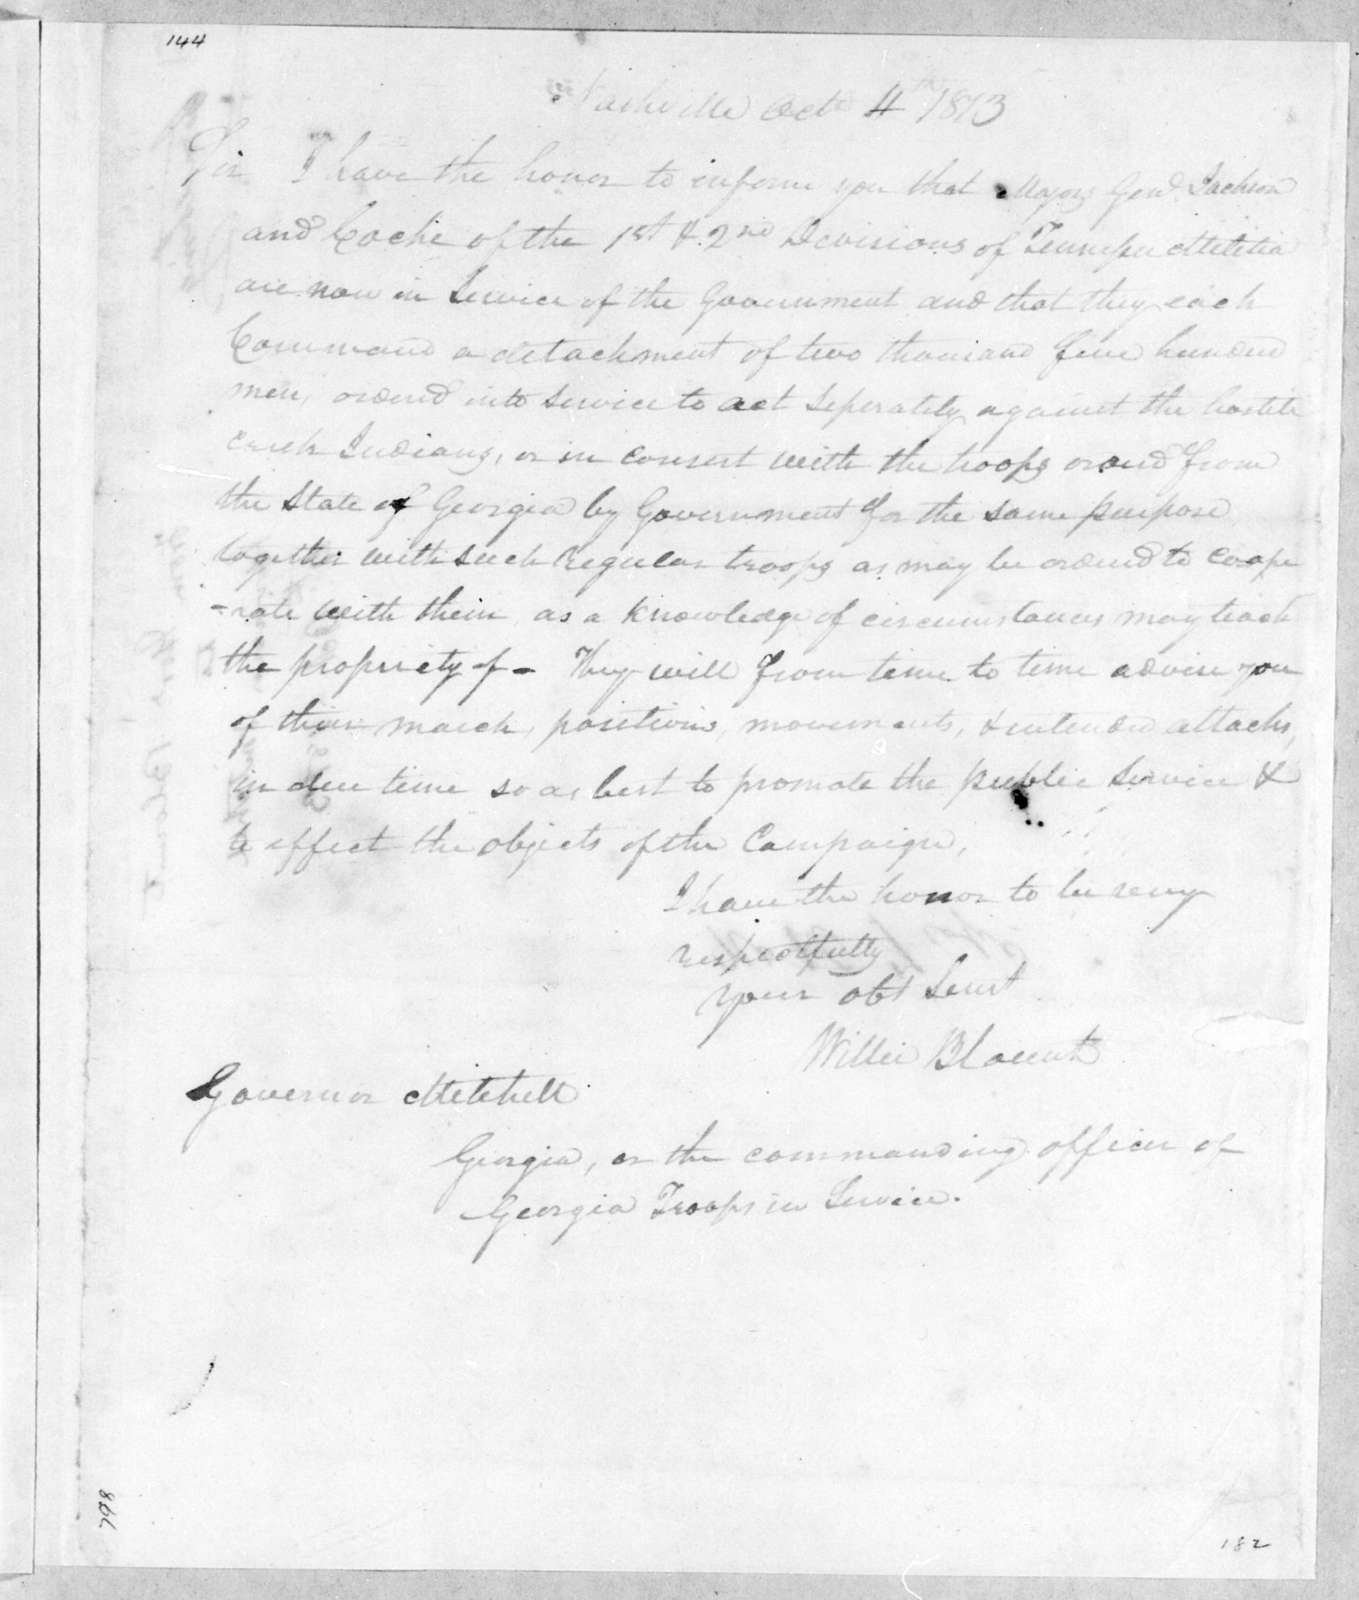 Willie Blount to John Cocke, October 4, 1813